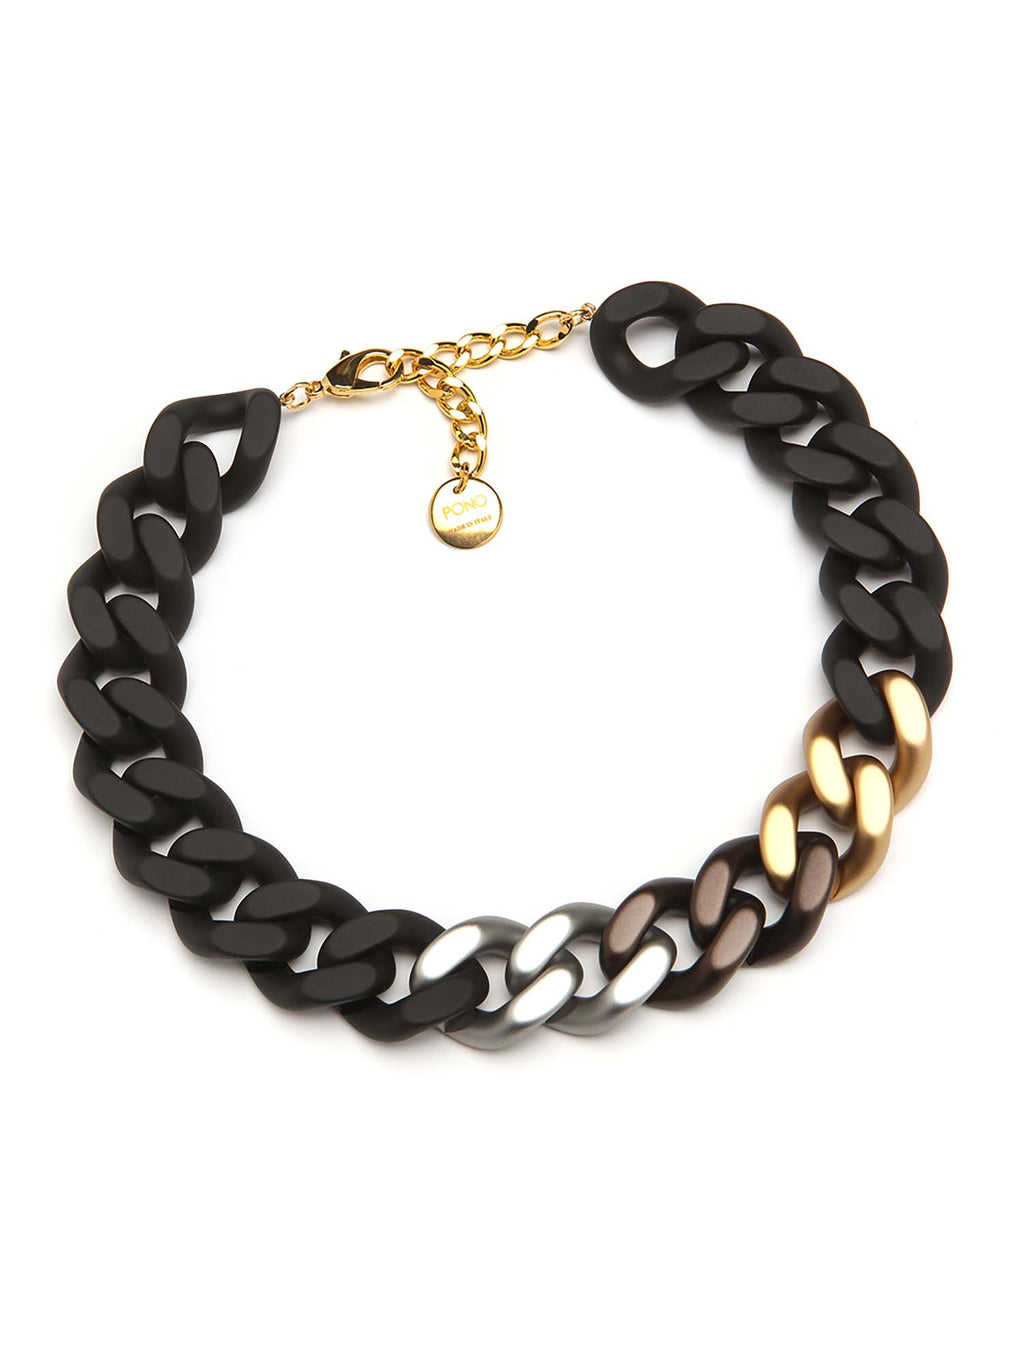 PONO Colette Noire Resin Necklace Matte Black